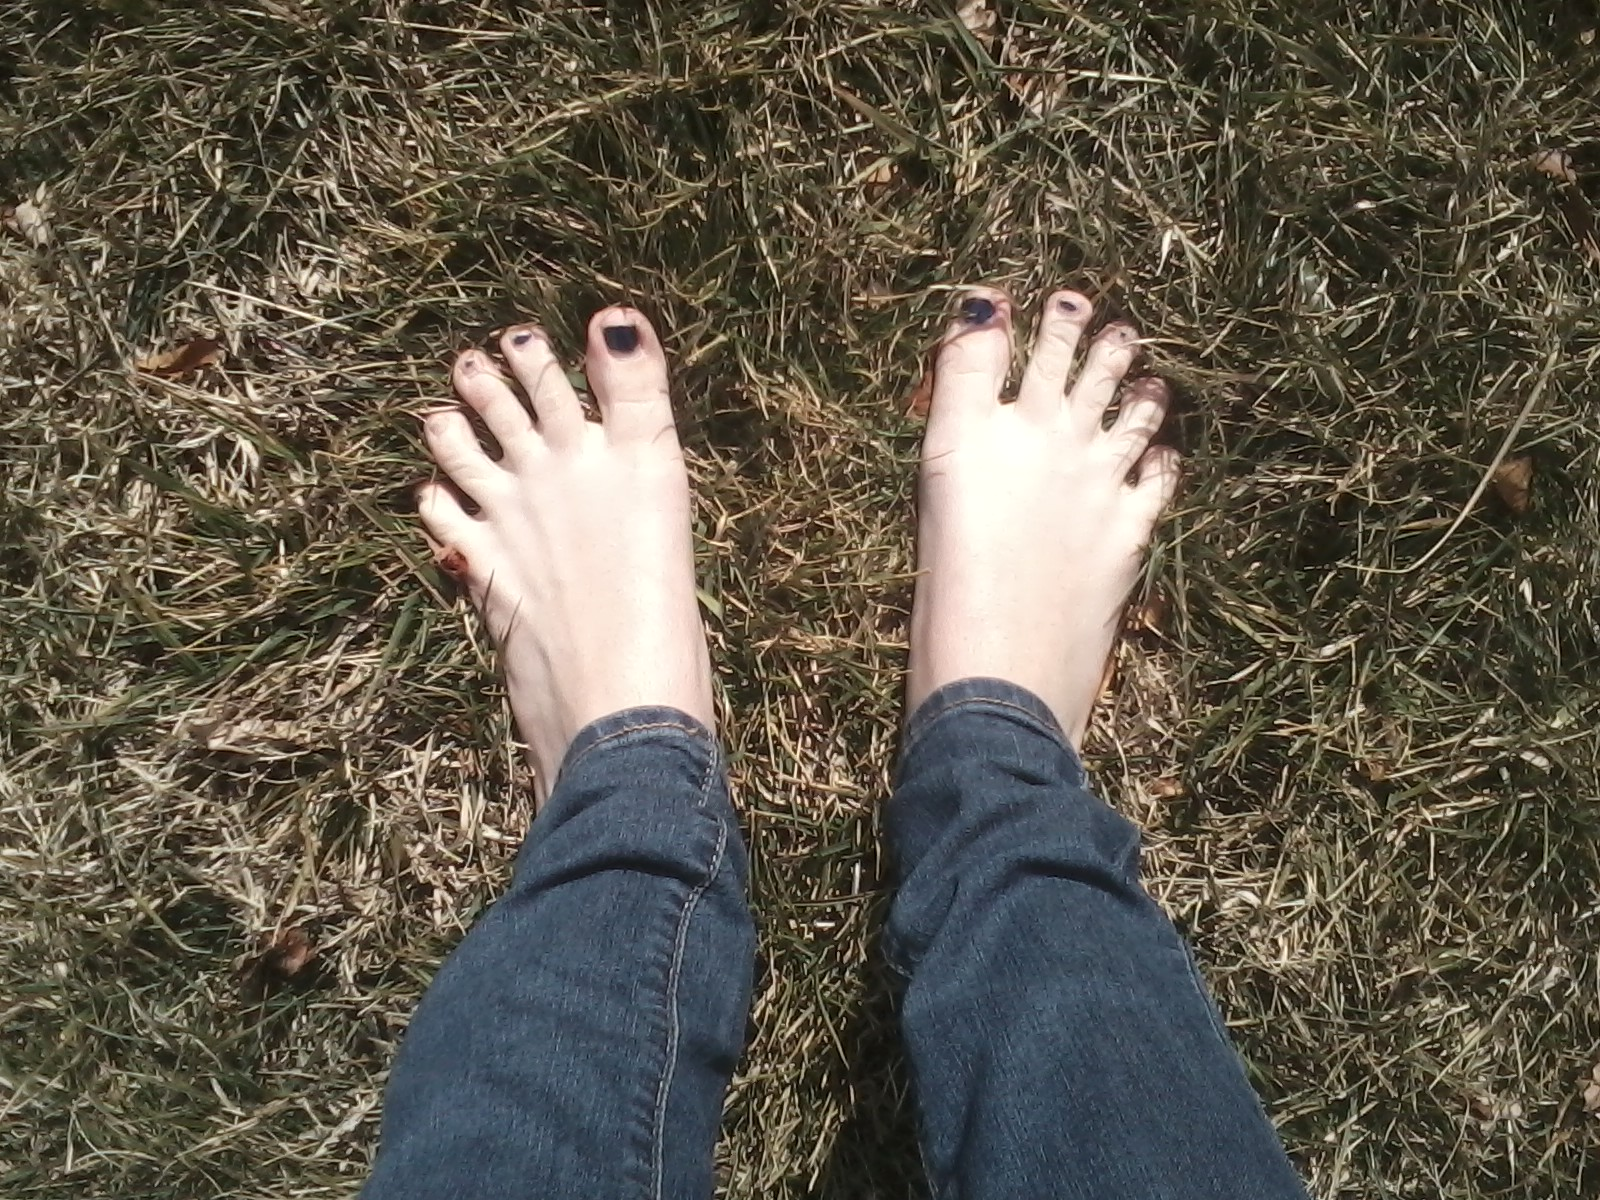 My feet in the summer grass.